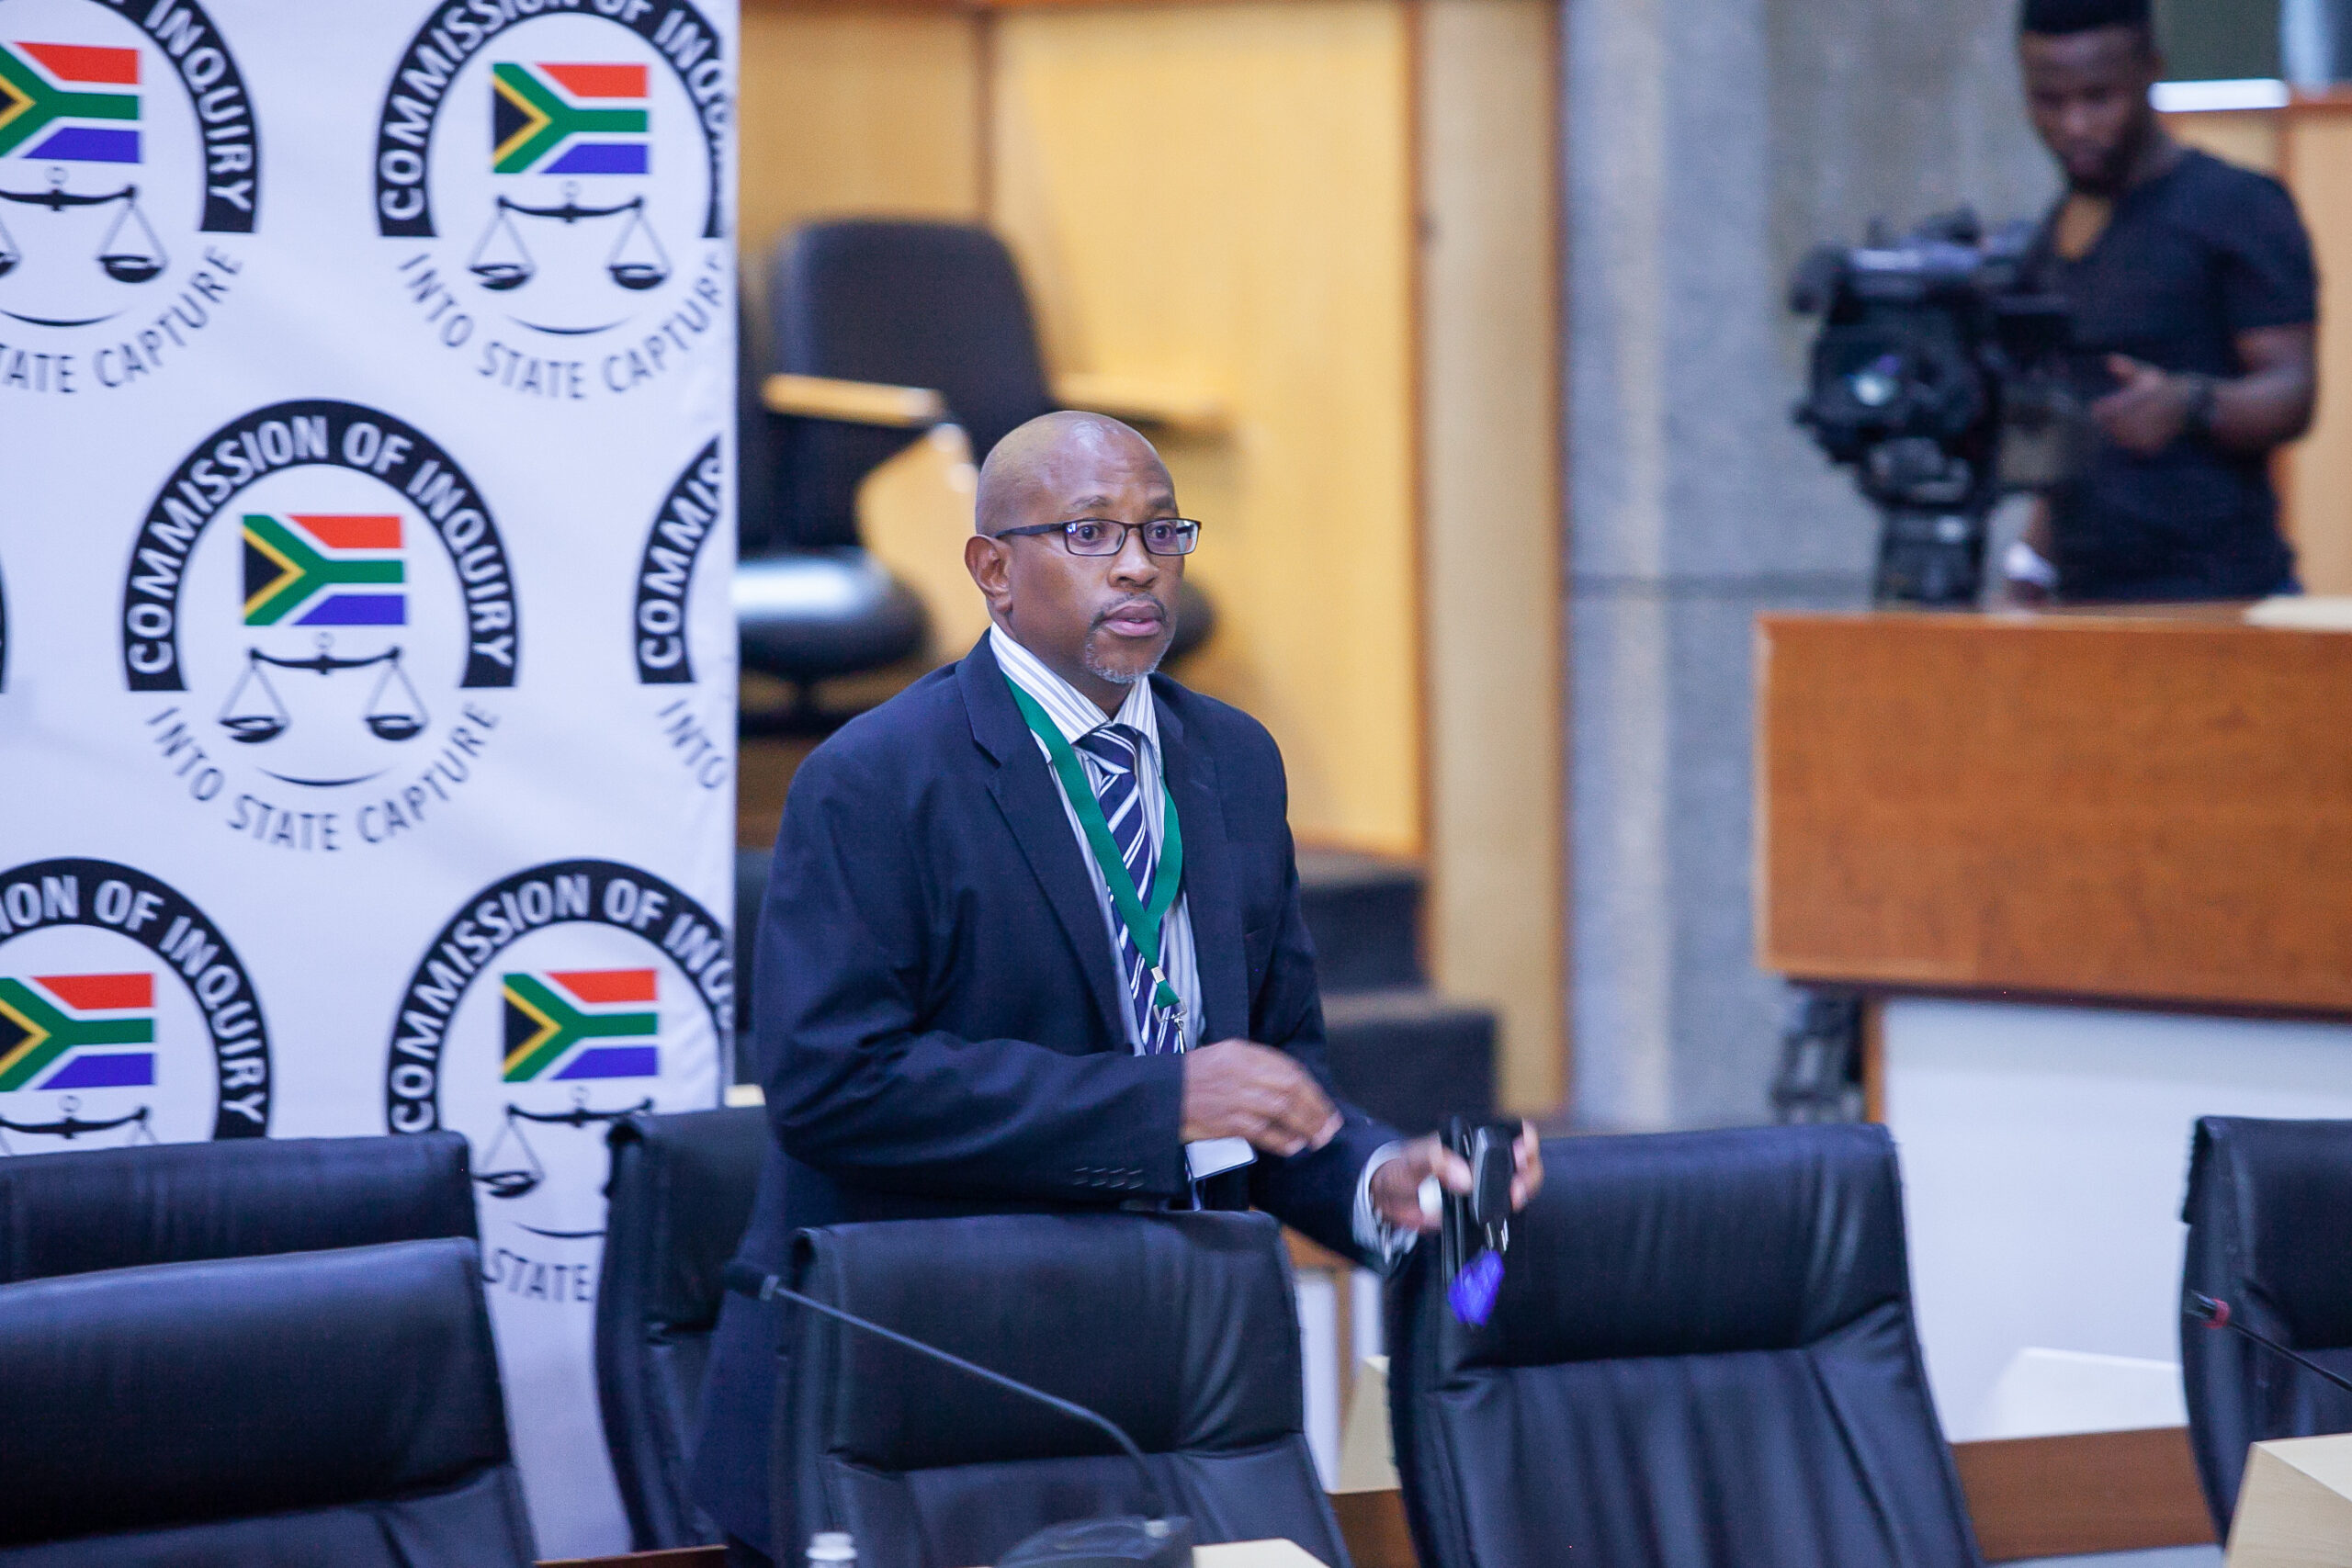 Montana lied about former tender committee chair's role in Swifambo locomotive deal, Zondo commission hears